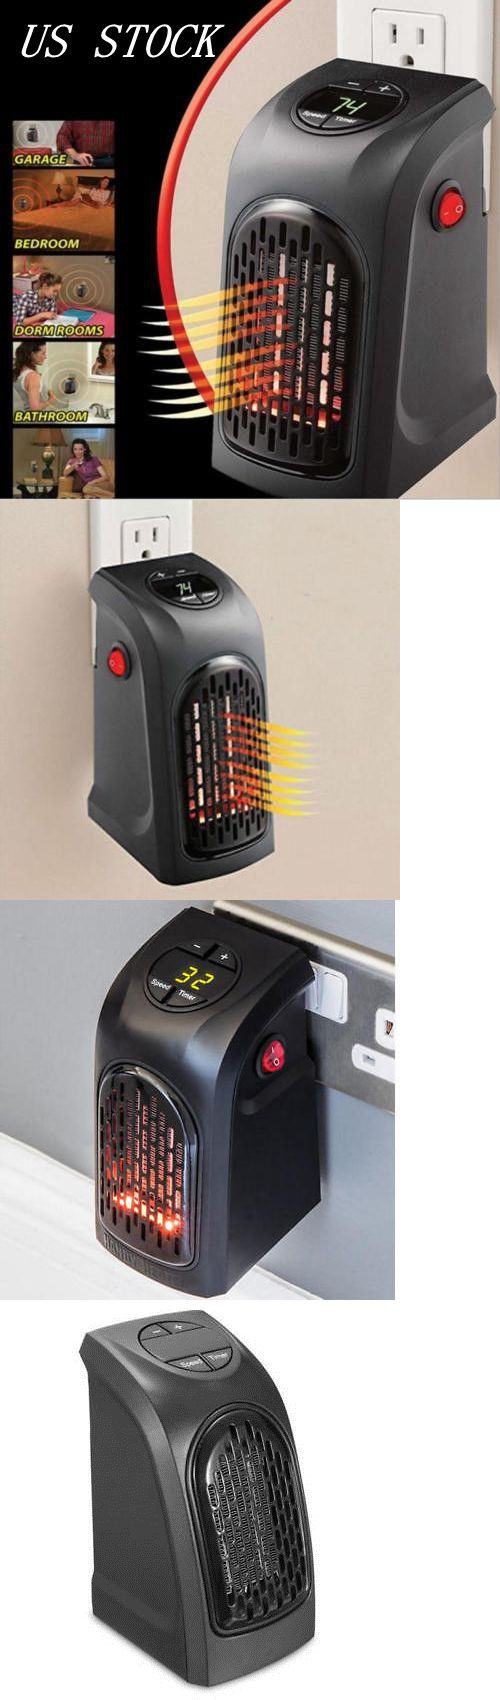 Air Conditioners And Heaters 185107 400w 220 240v Mini Furnace Portable Plug In Electric Wall Outlet Space Heater Wall Outlets Home Furnace Portable Fan